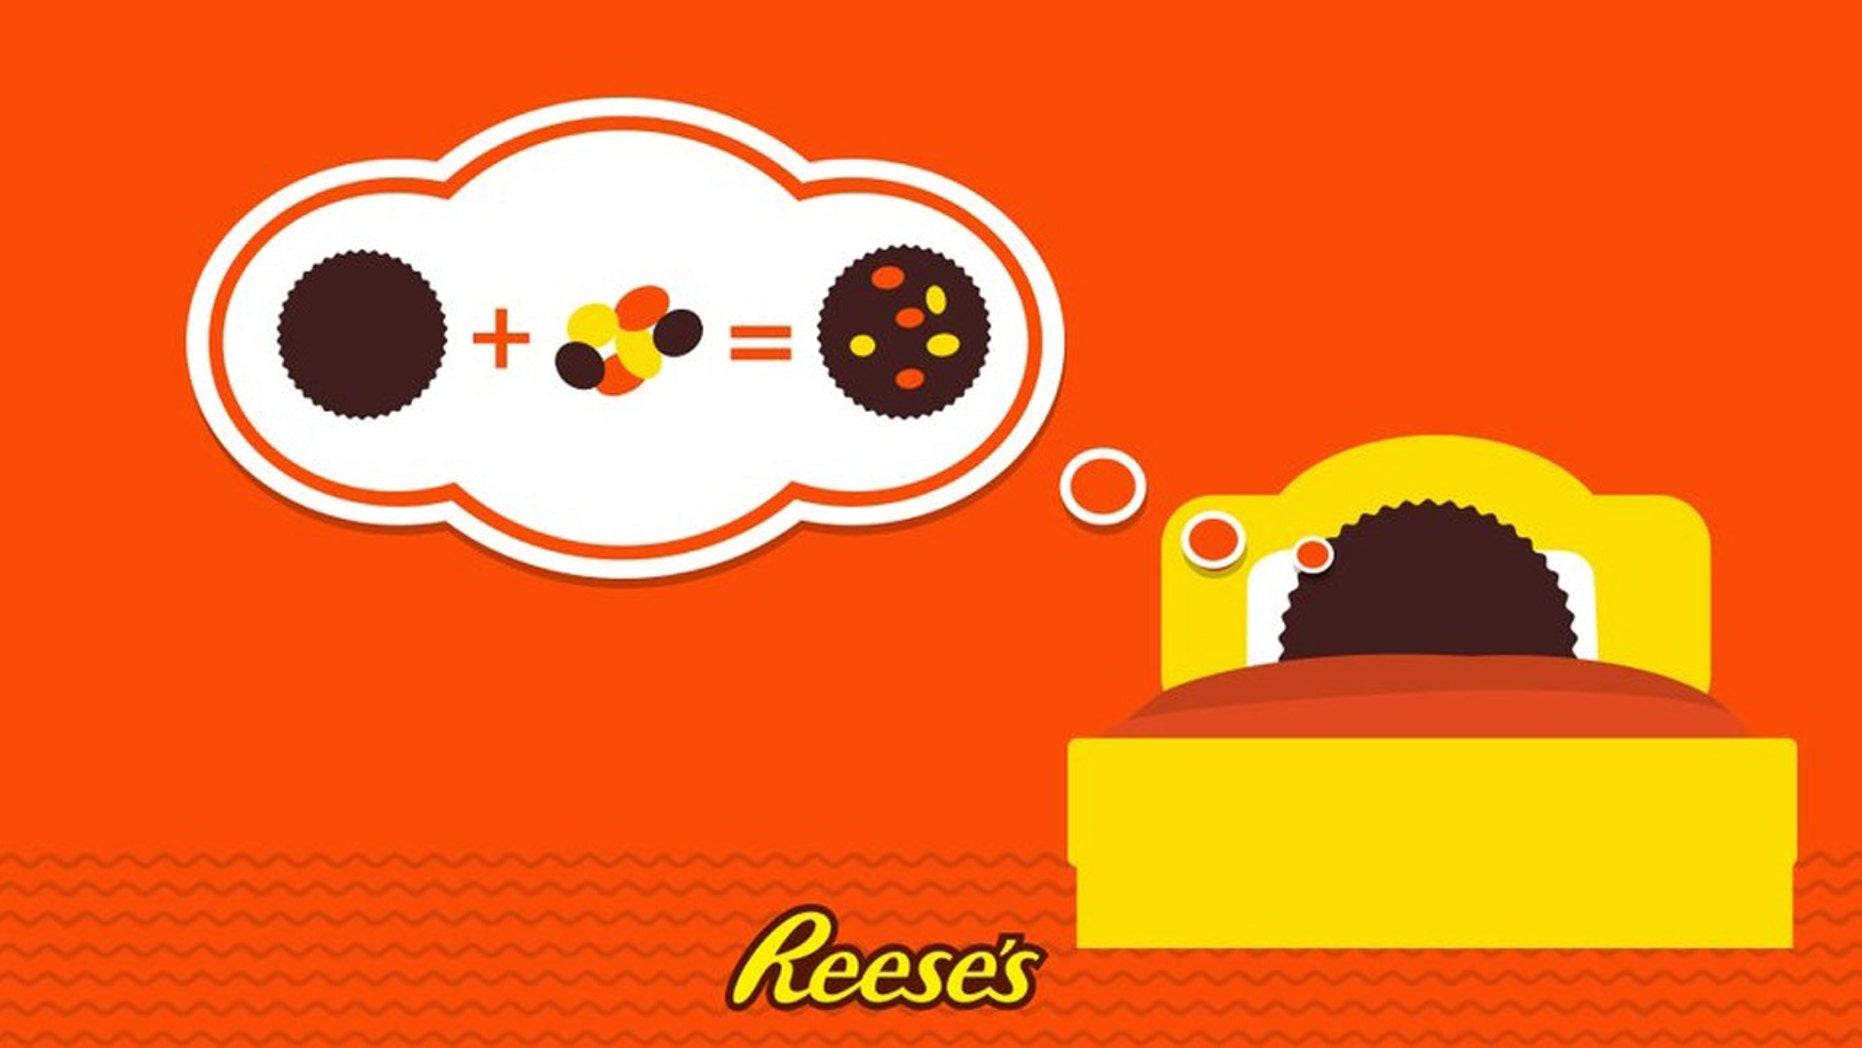 Are you dreaming of a Reese's Pieces mashup? You're not alone.